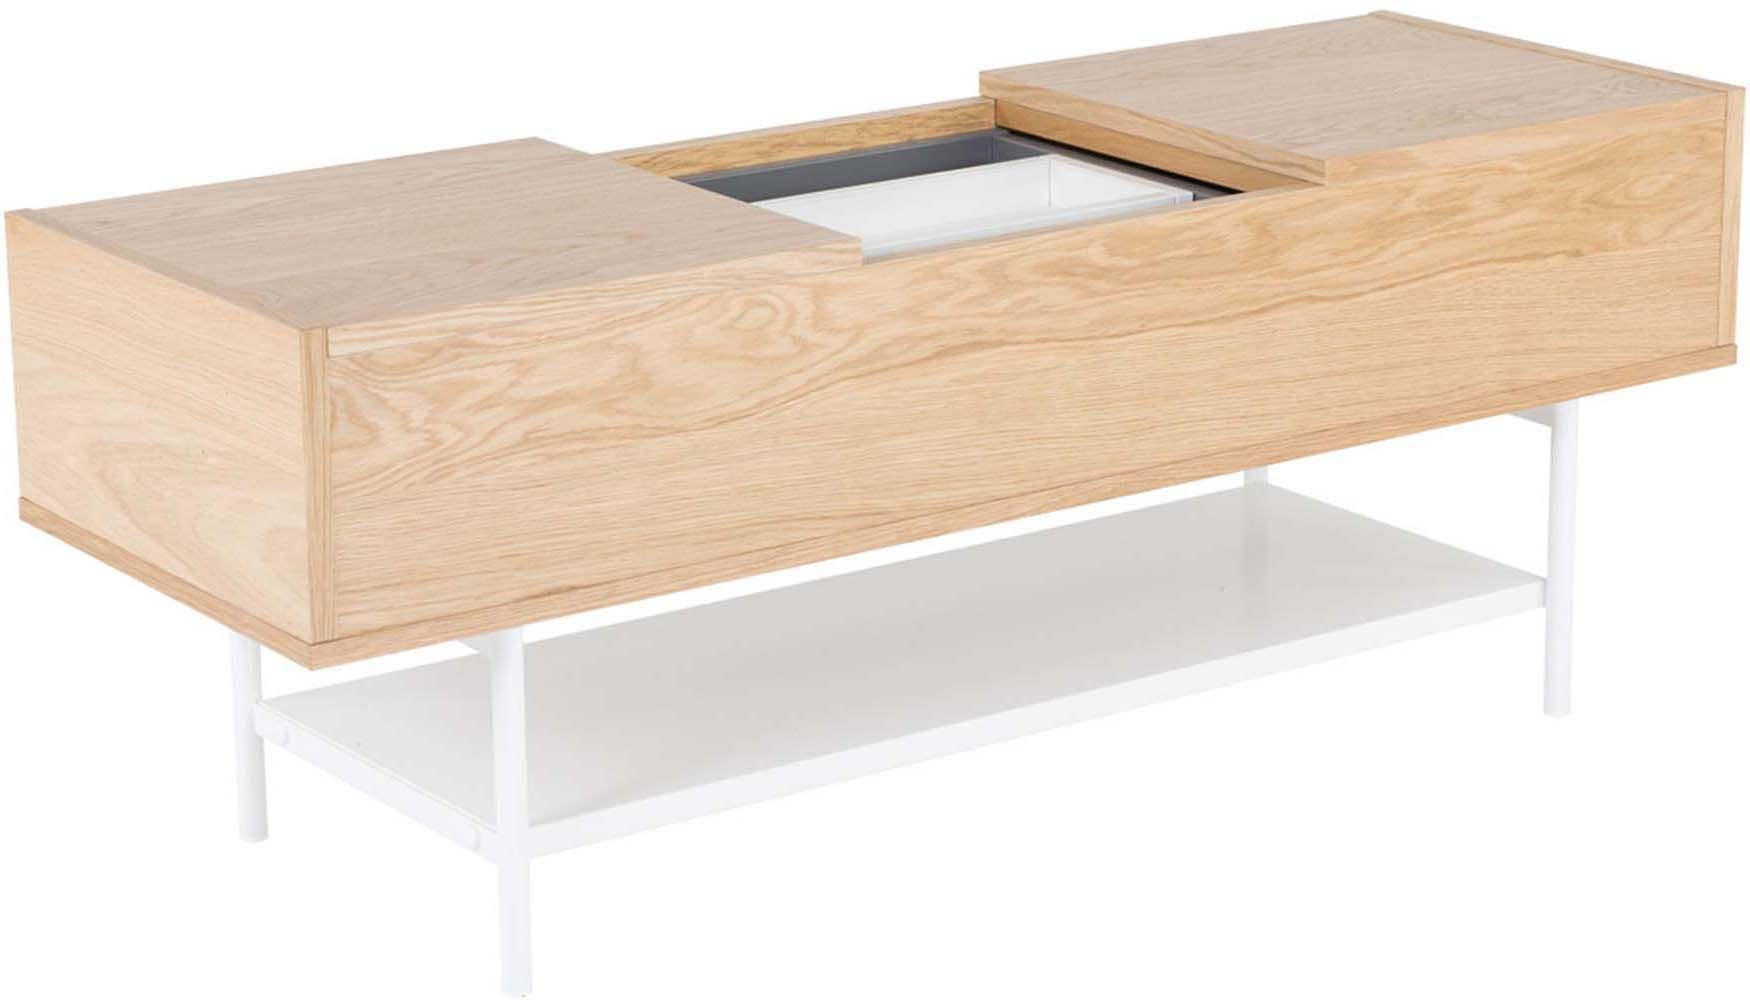 Table basse plaqu ch ne naturel et blanc laqu ebay - Table basse chene naturel ...